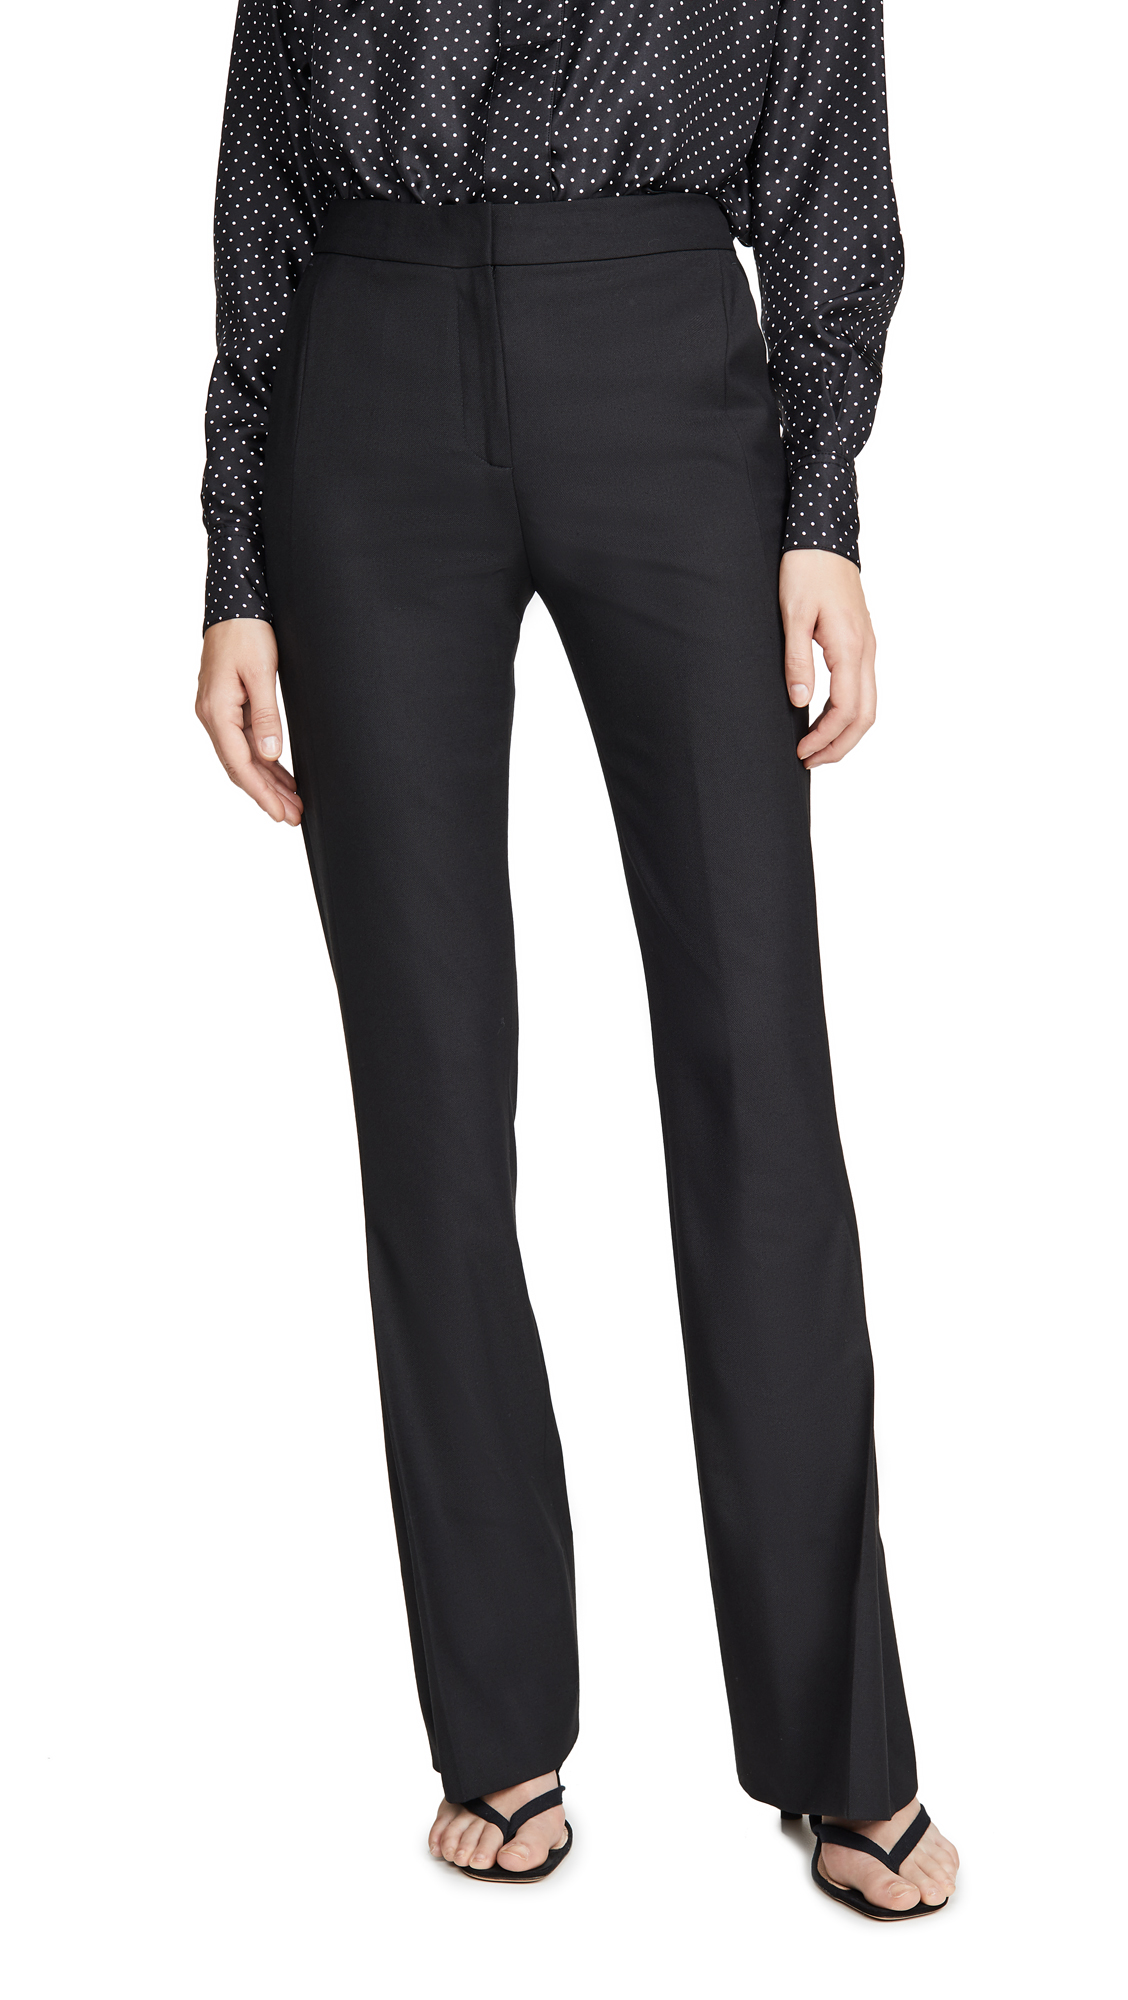 Victoria Victoria Beckham Pleat Leg Trousers